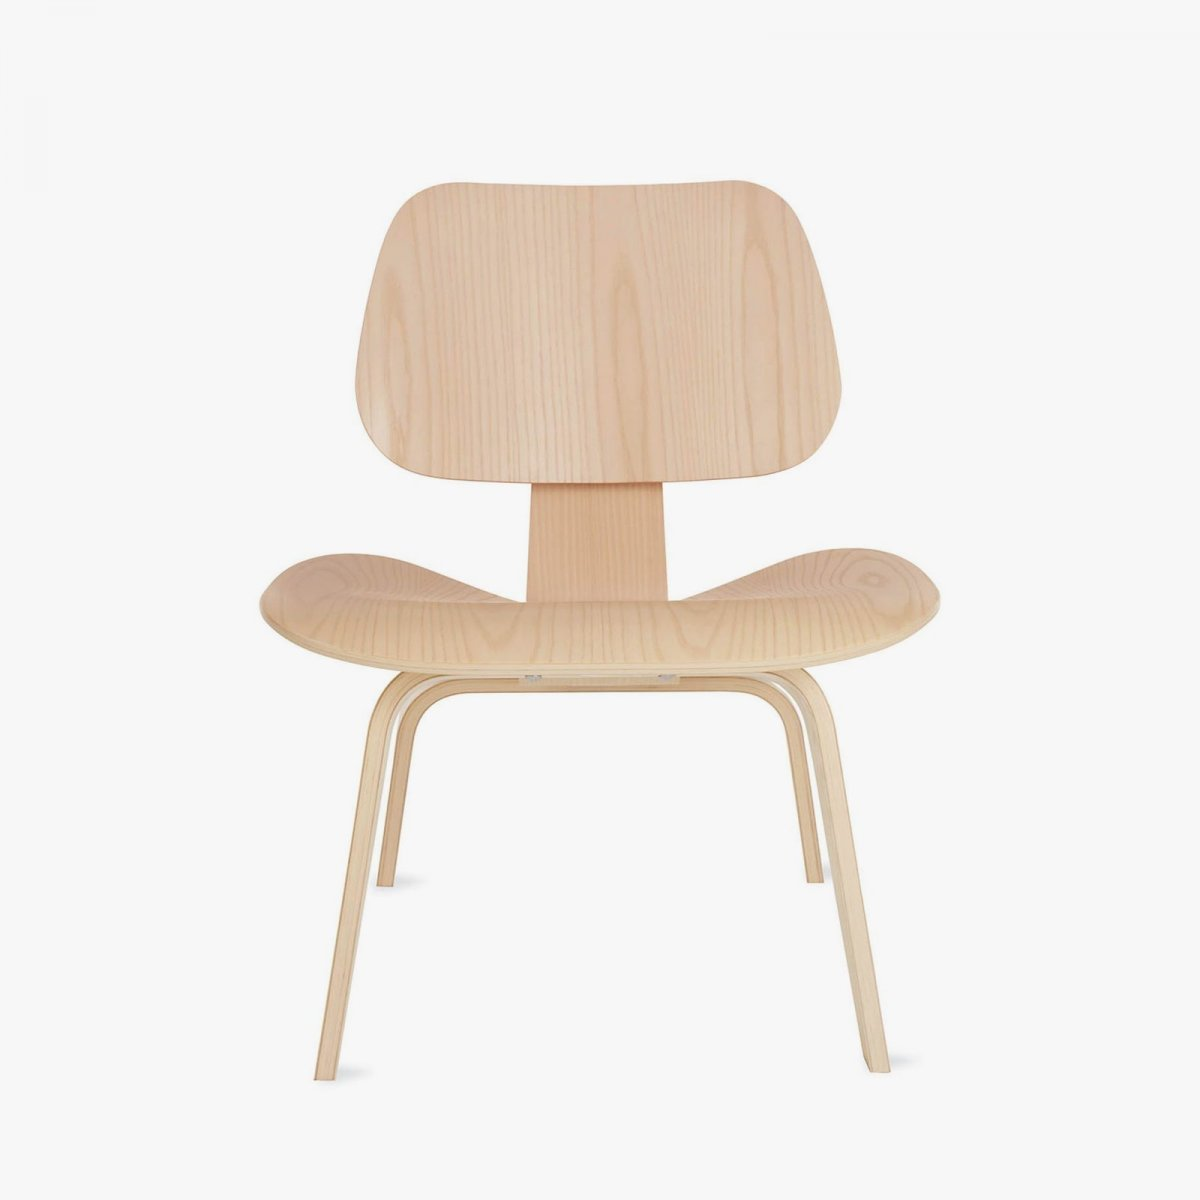 Excellent Herman Miller Eames Molded Plywood Lounge Chair With Wood Base Cjindustries Chair Design For Home Cjindustriesco